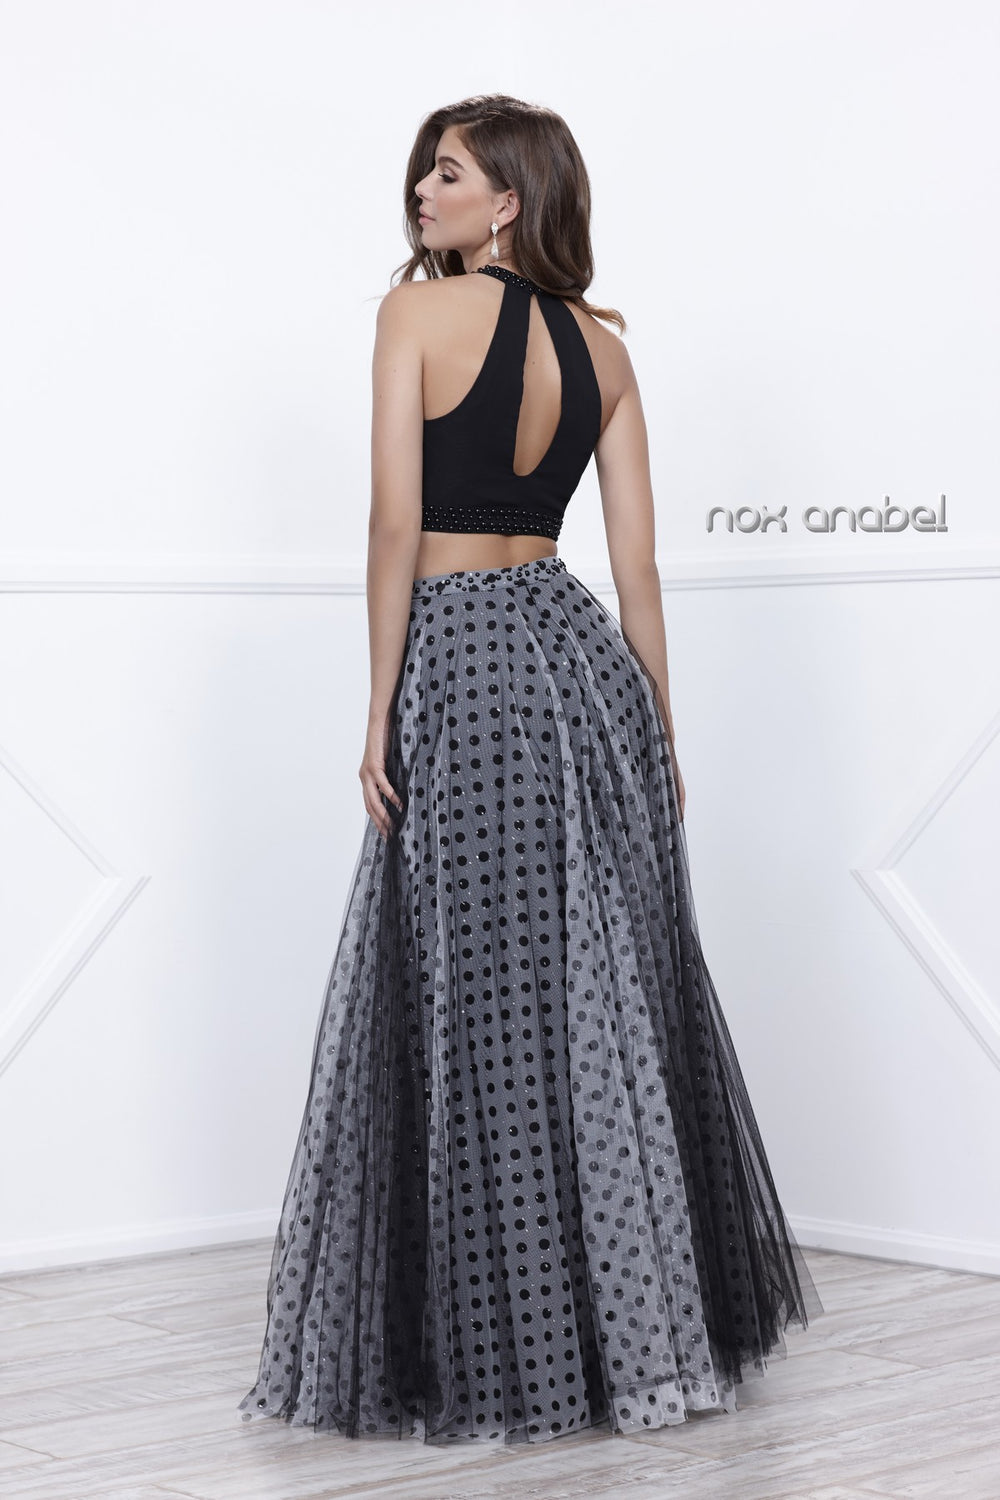 TWO-PIECE HALTER POLKA DOT PRINTED EVENING GOWN_8204 BY NARIANNA